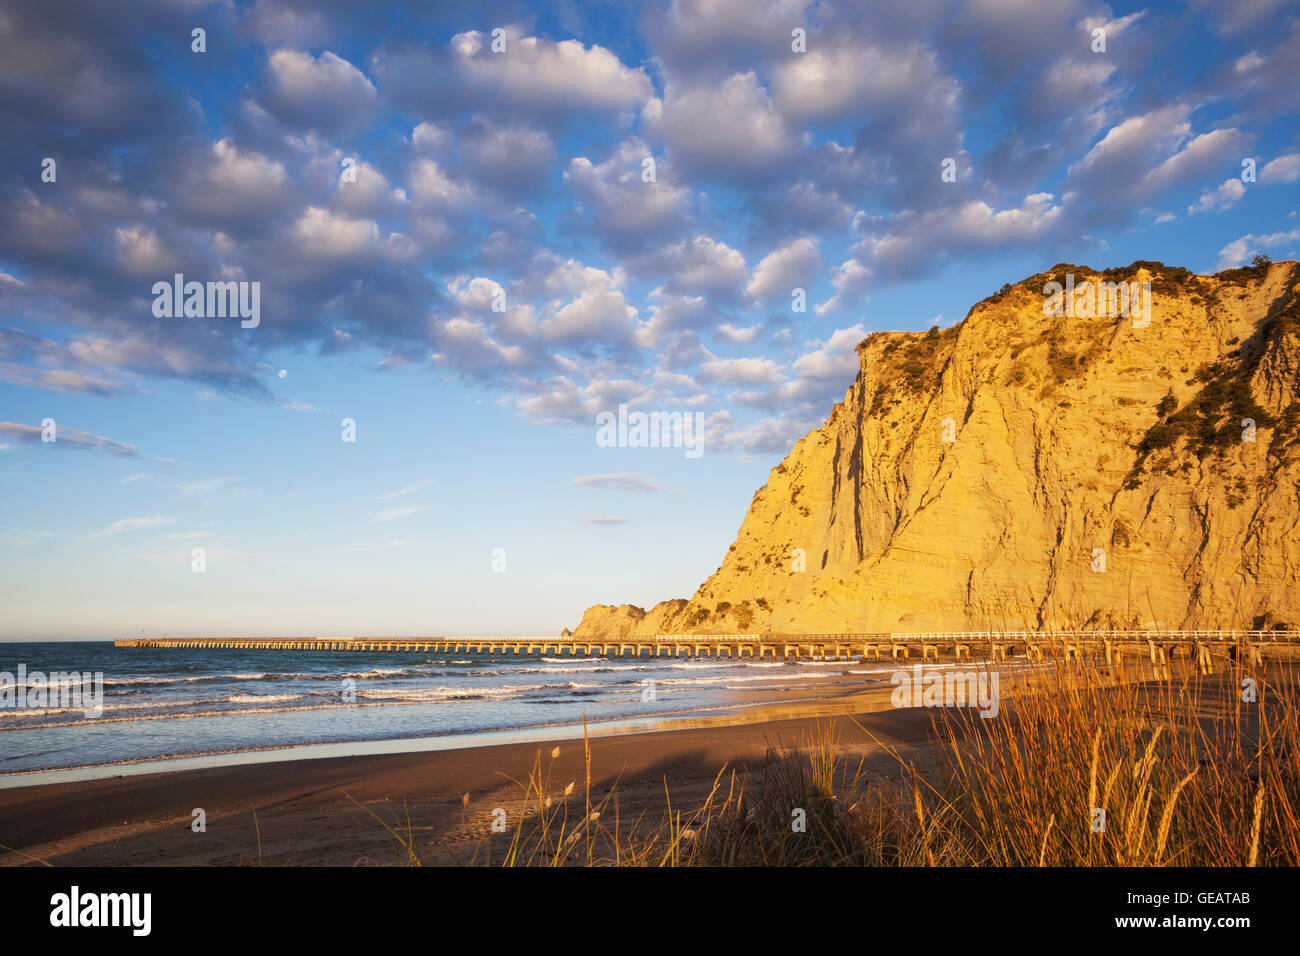 New Zealand, North Island, East Cape Region, Tolaga Bay, historic Tologa Bay Wharf, South Pacific, area of Cook's - Stock Image